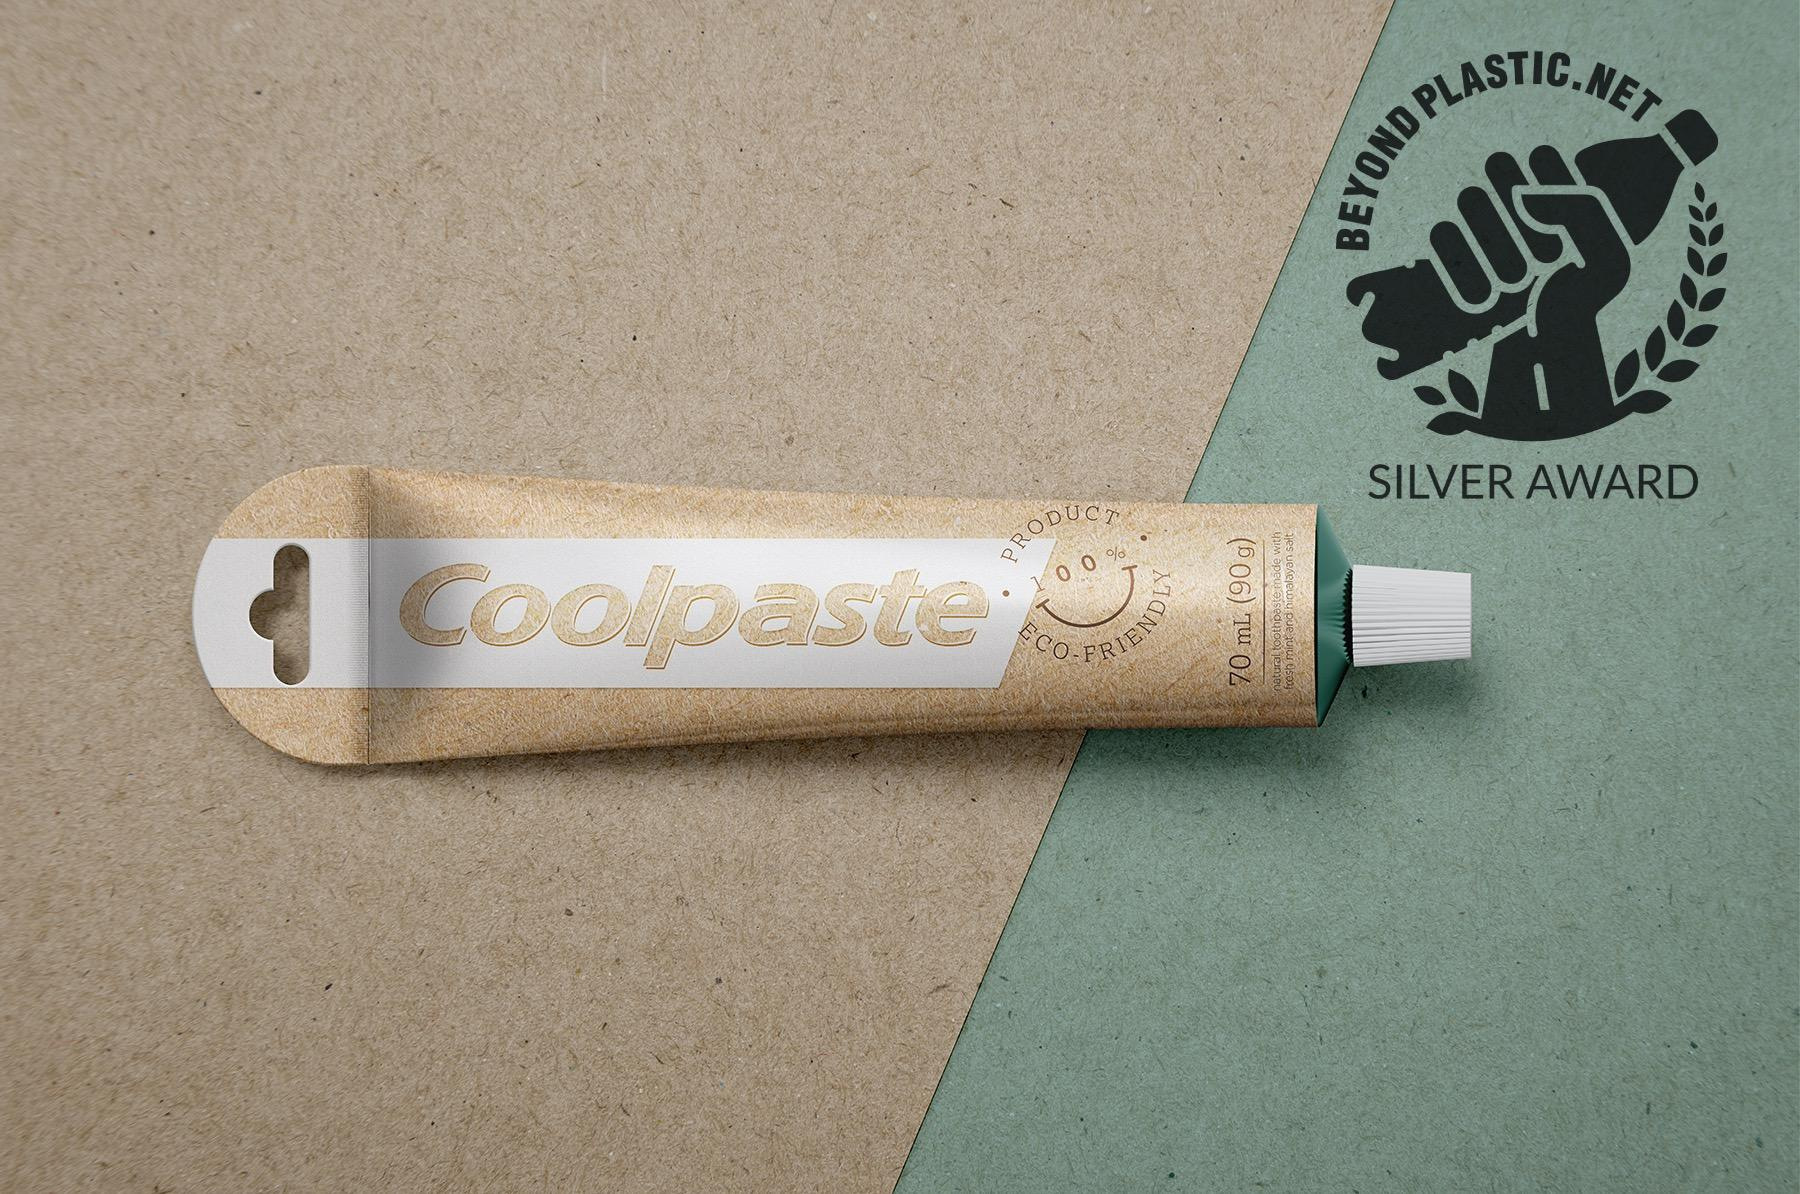 silver-innovative-coolpaste-1595865656184.jpg